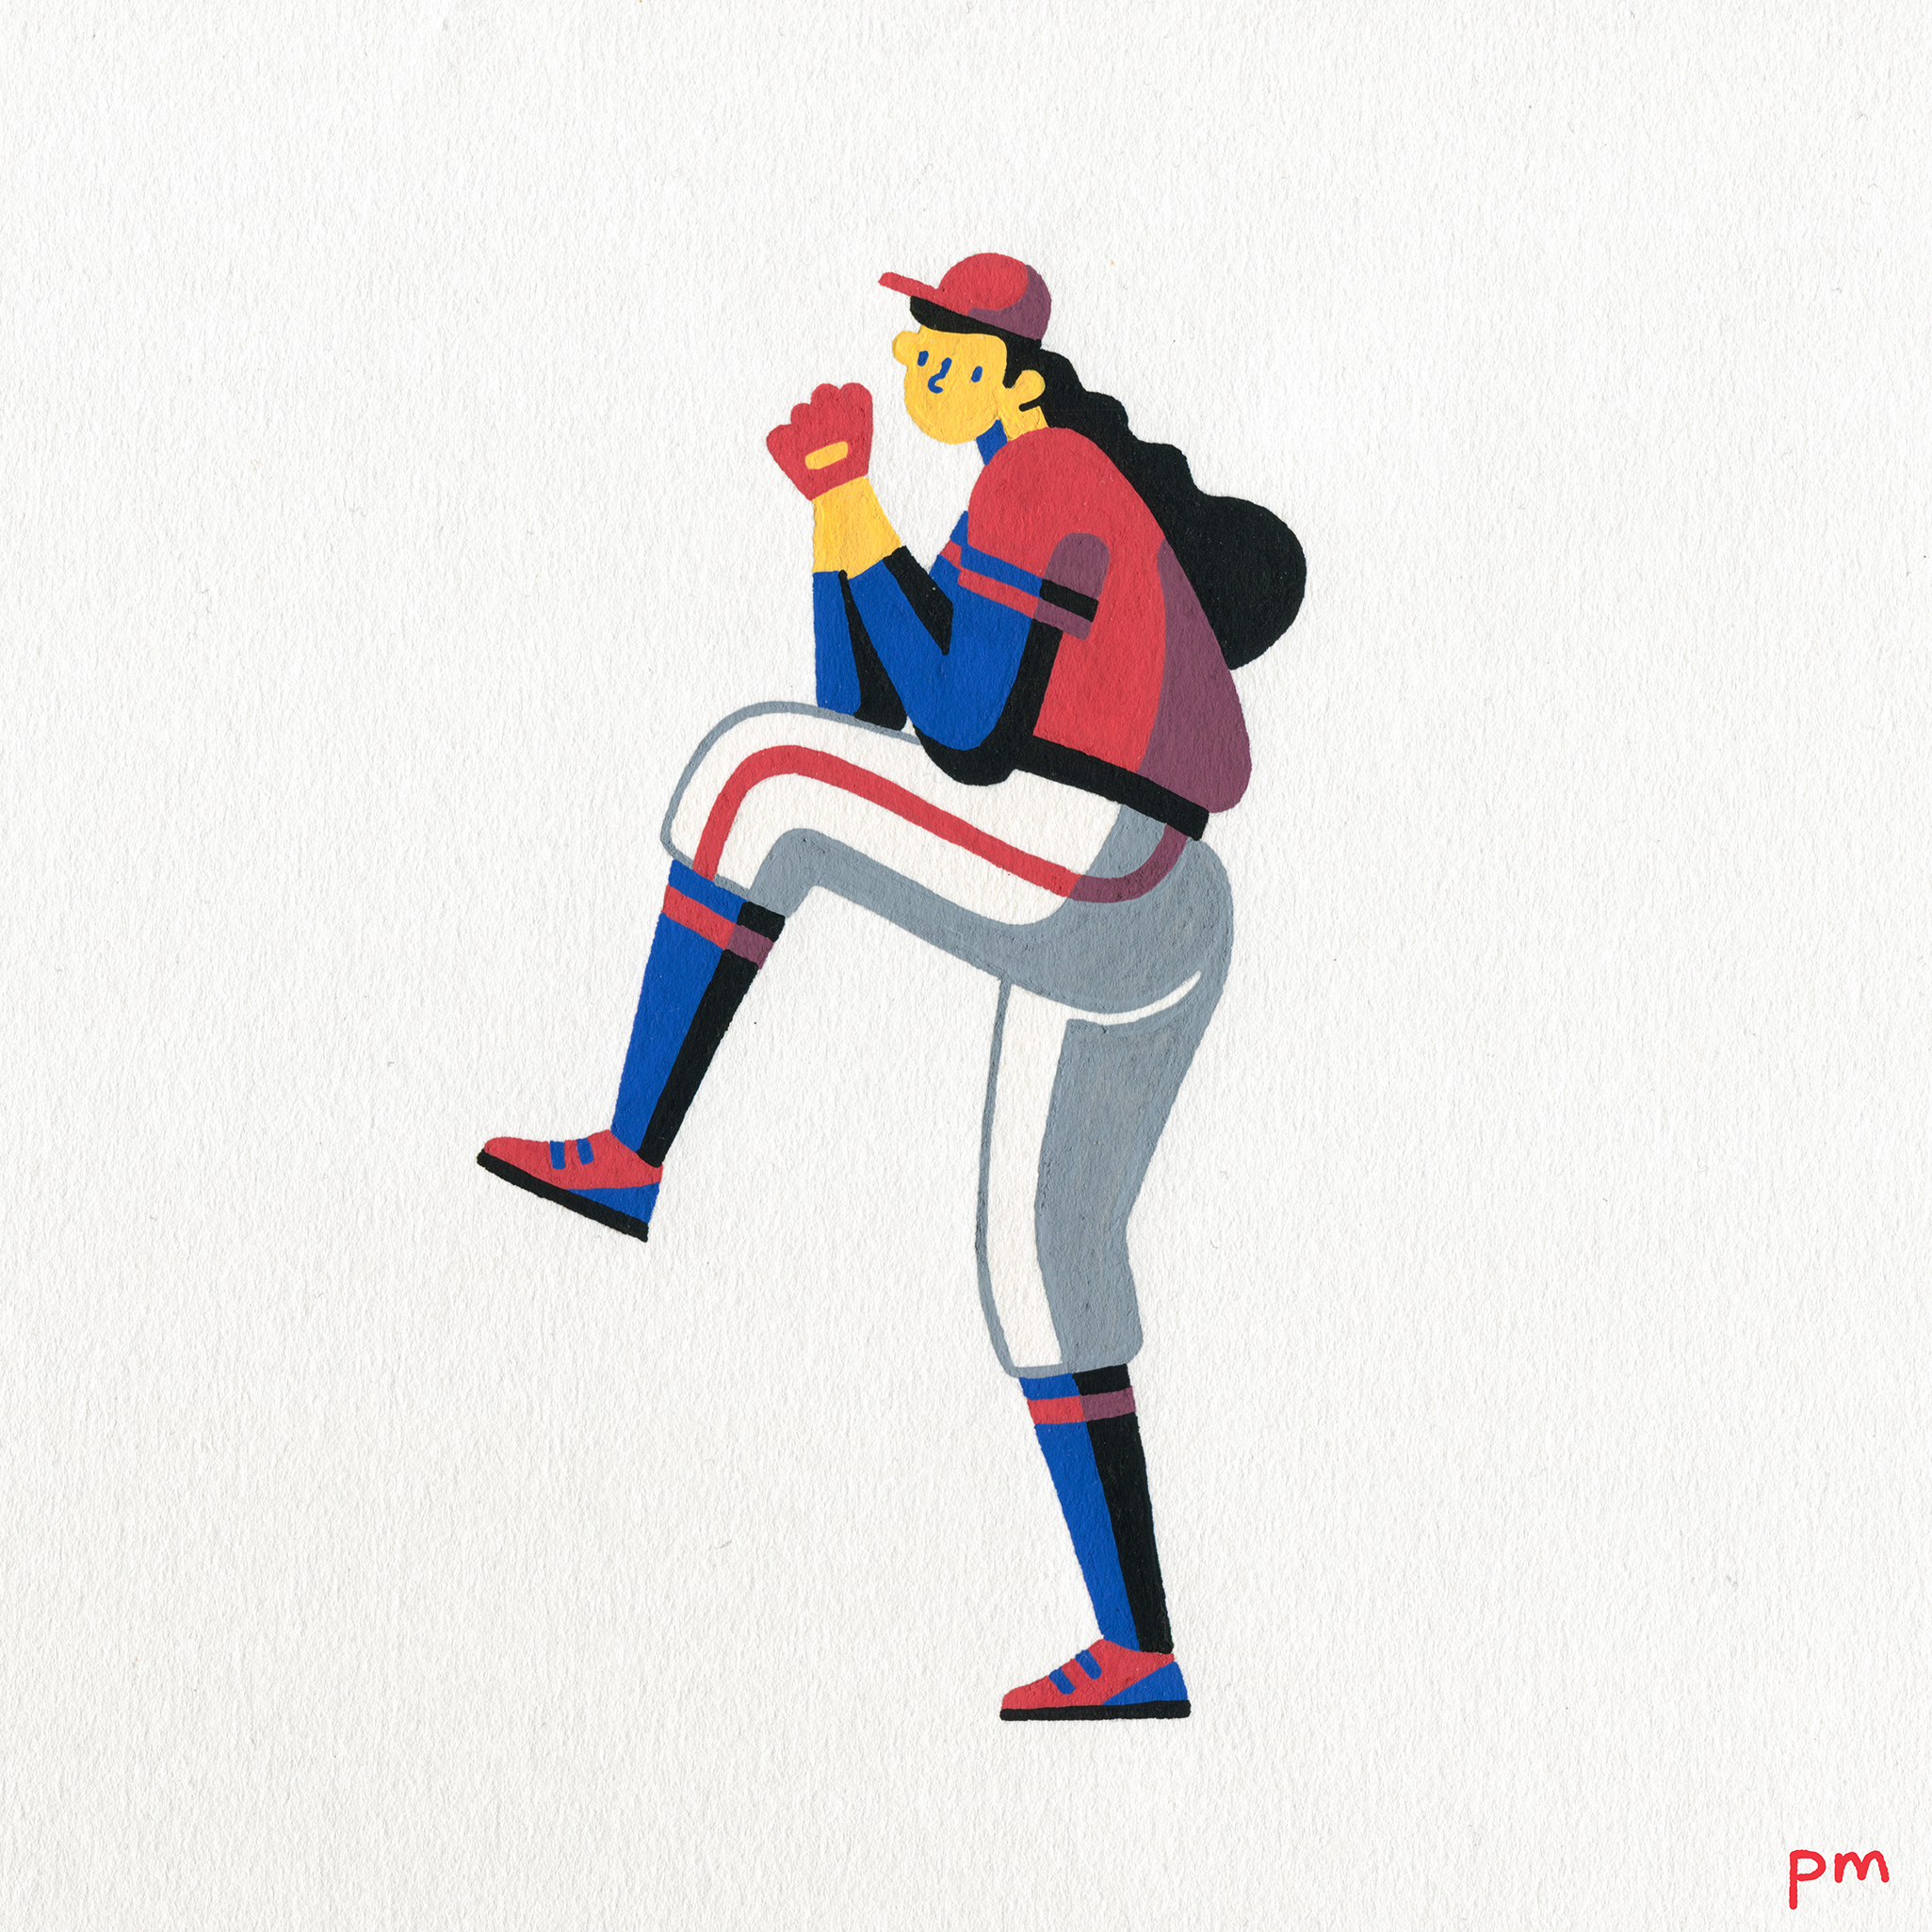 This is an illustration of a female baseball athlete about to pitch, wearing American colours for my illustrated sports series